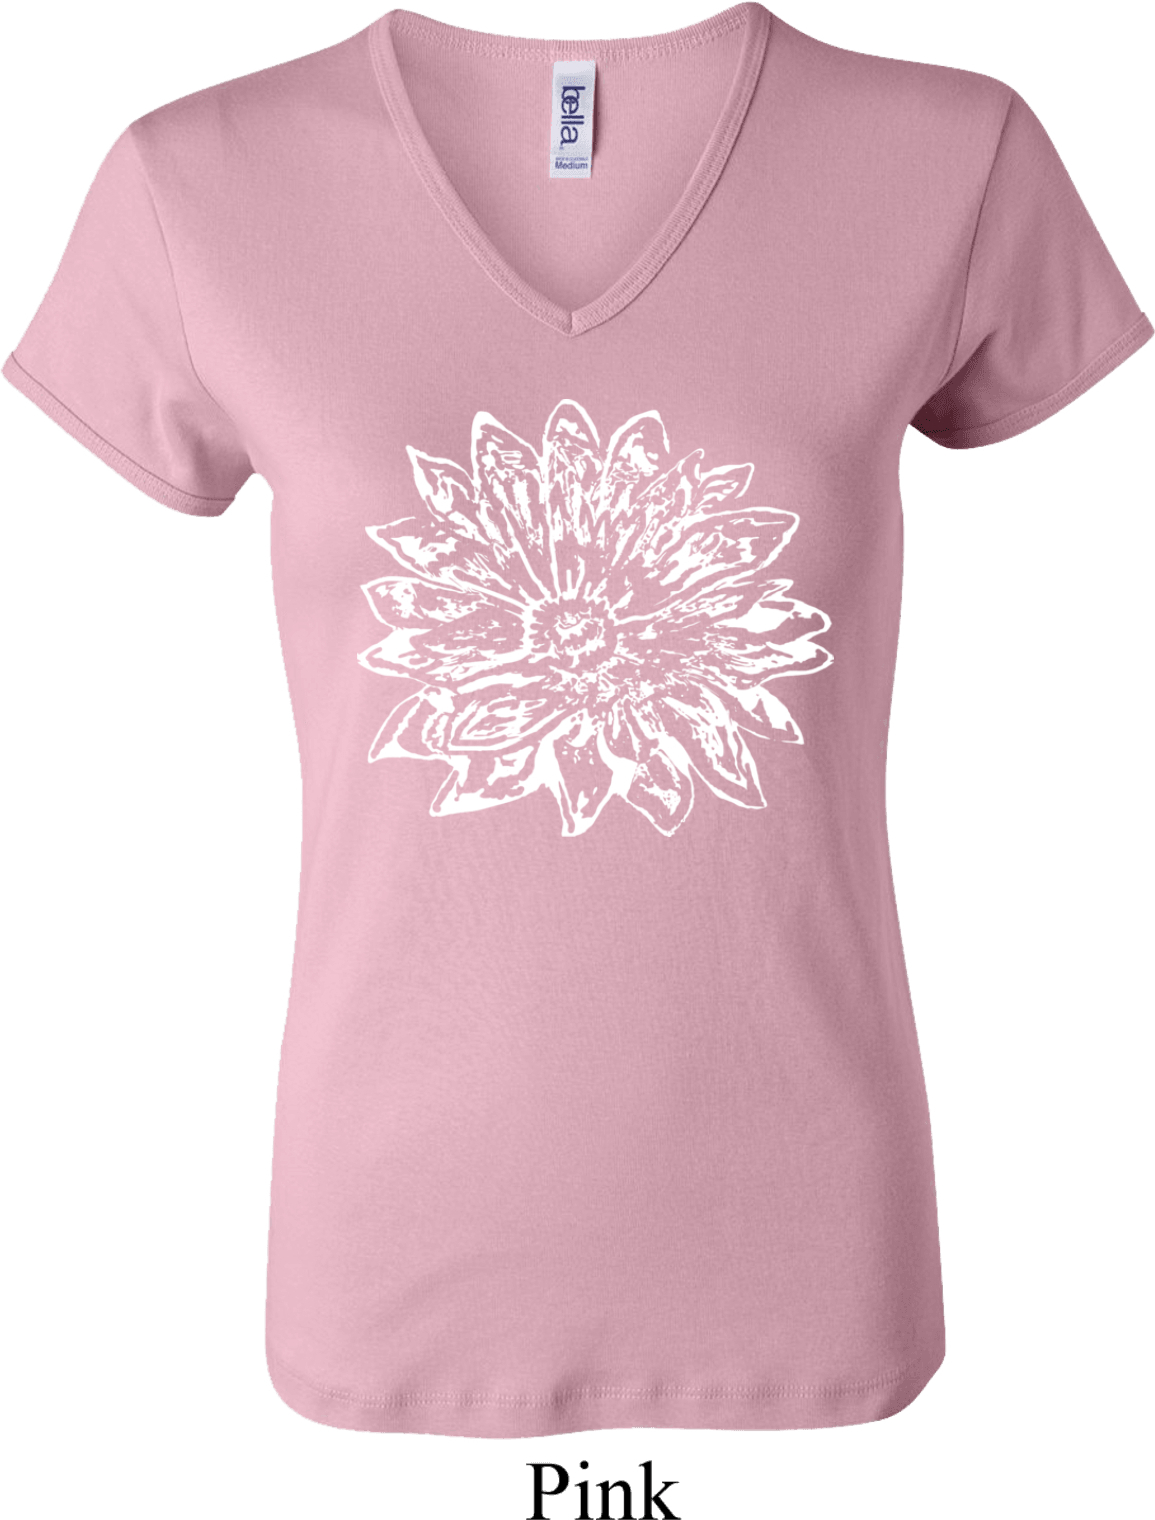 Ladies Yoga Shirt Sketch Lotus V Neck Tee T Shirt Sketch